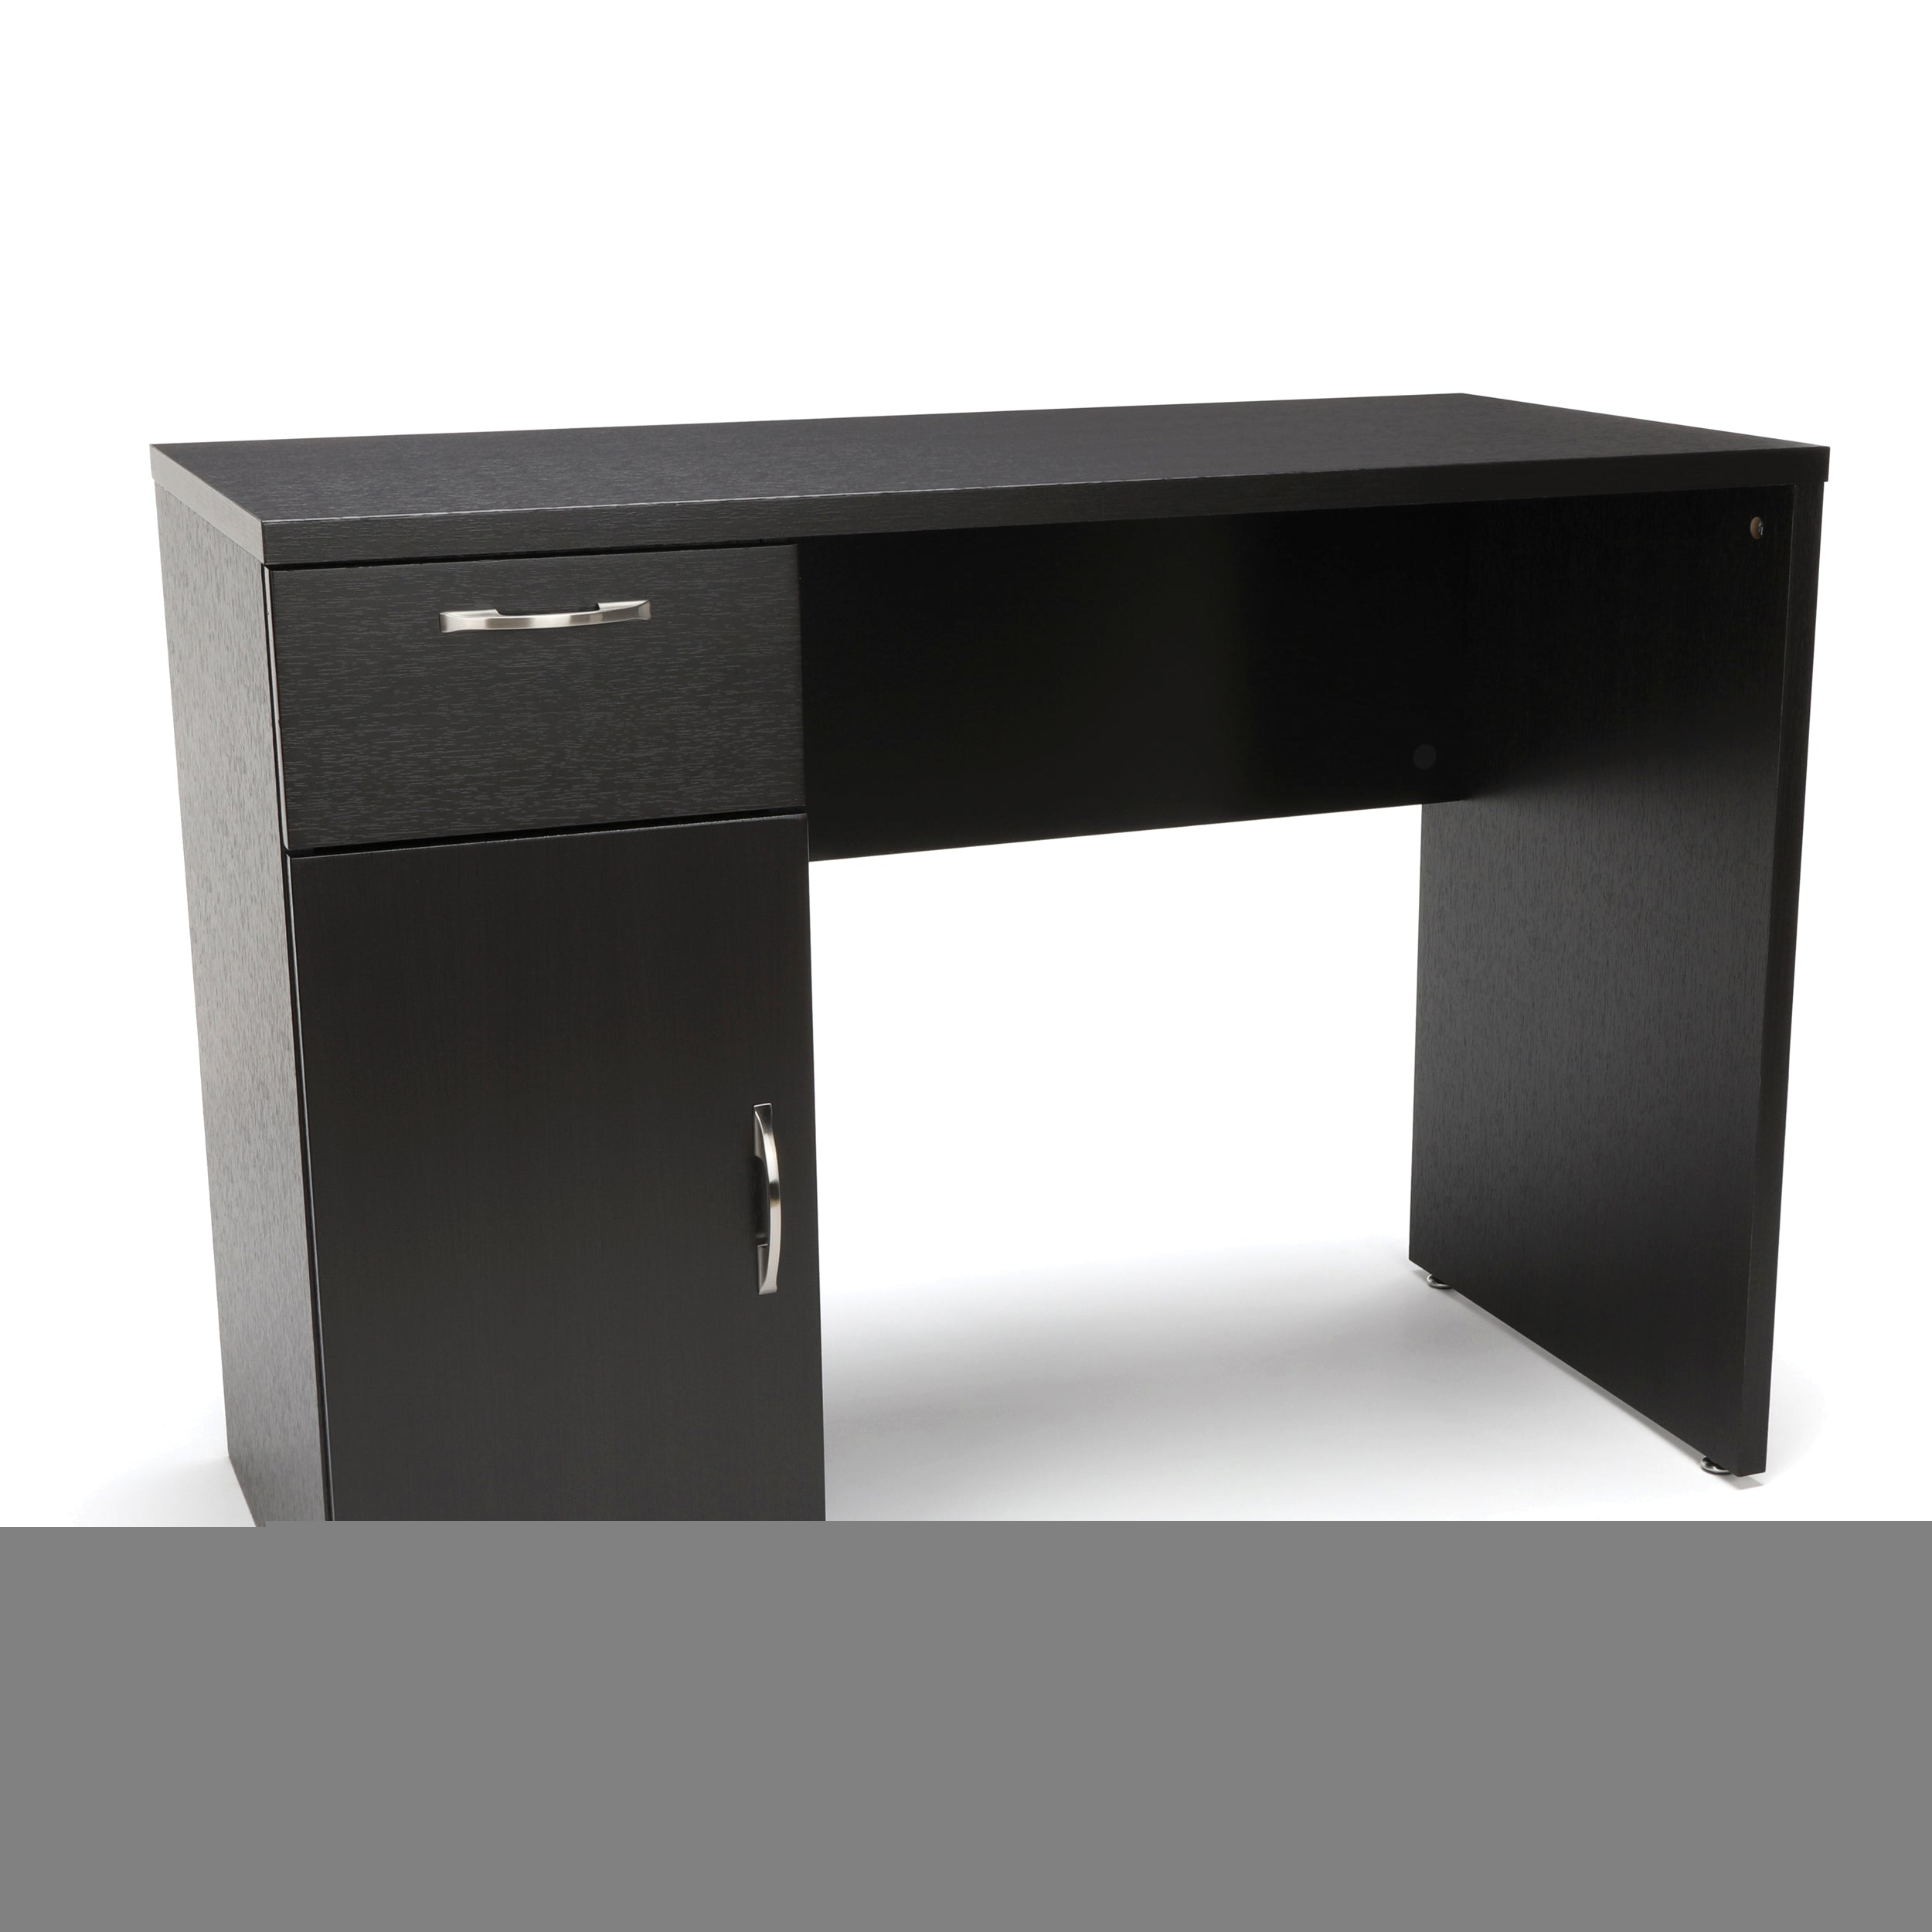 Essentials by OFM Single Pedestal Solid Panel Desk W/ Drawer & Cabinet